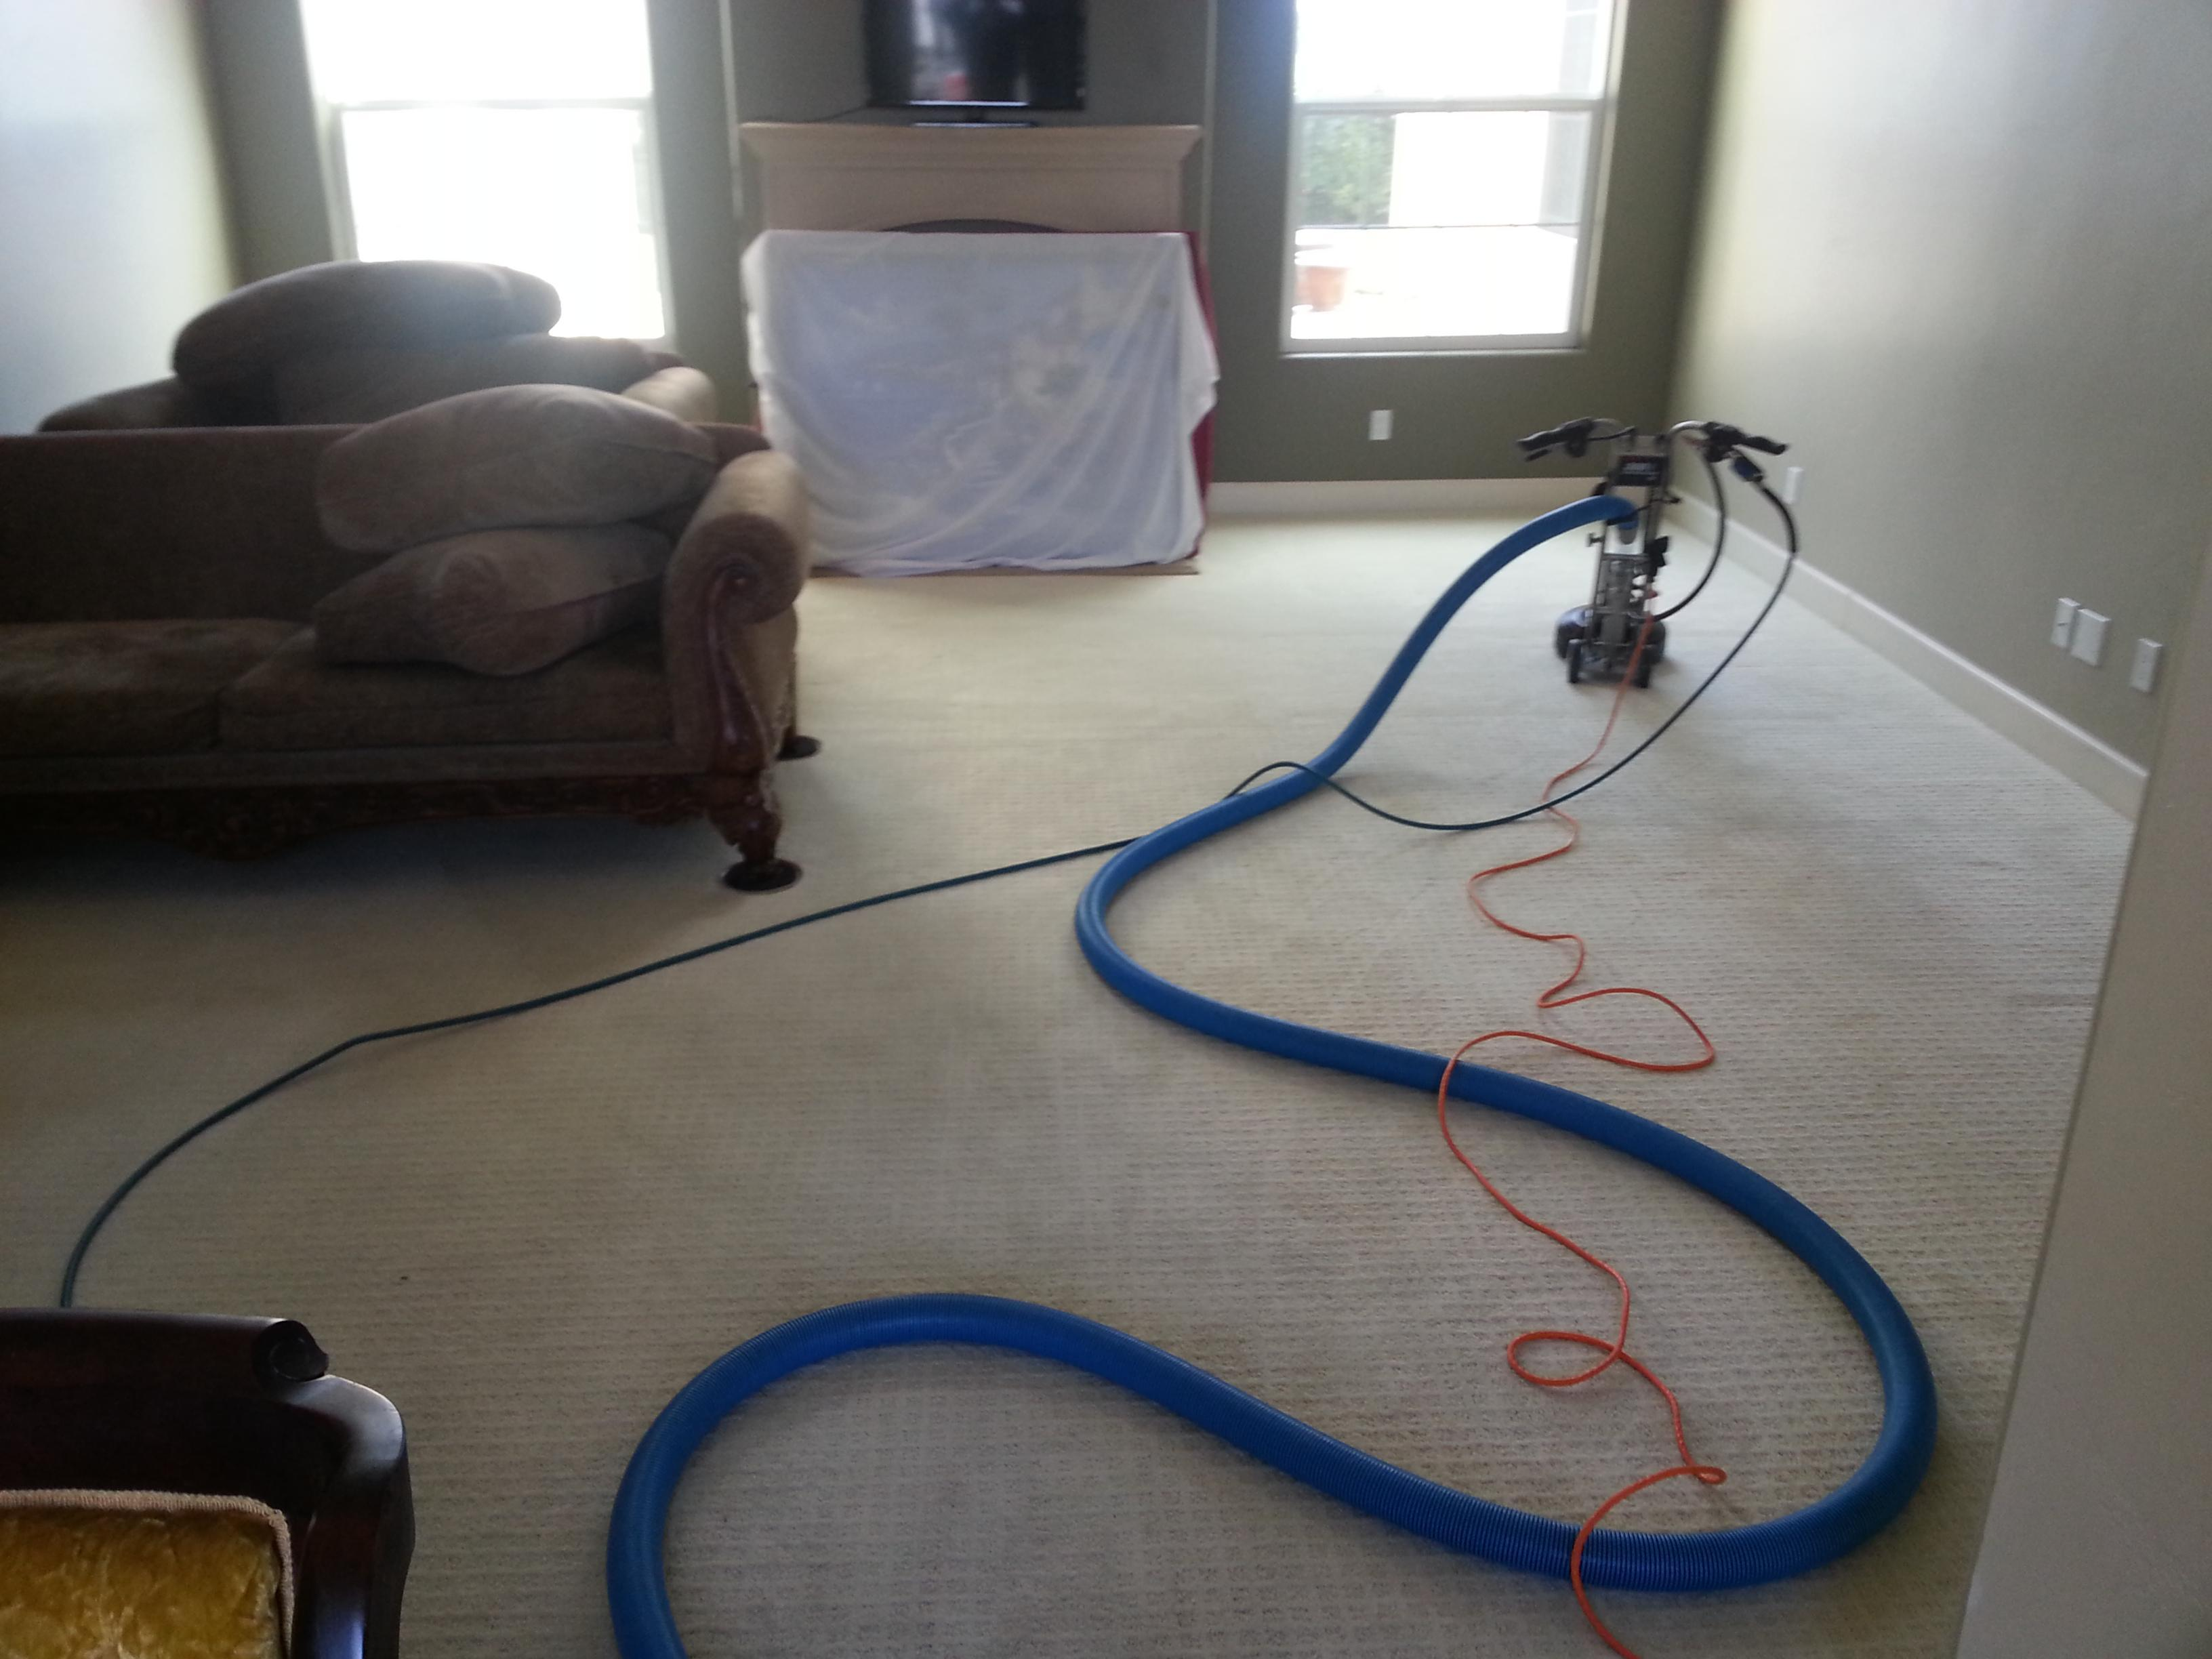 Skyy Blue Carpet Cleaning - ad image